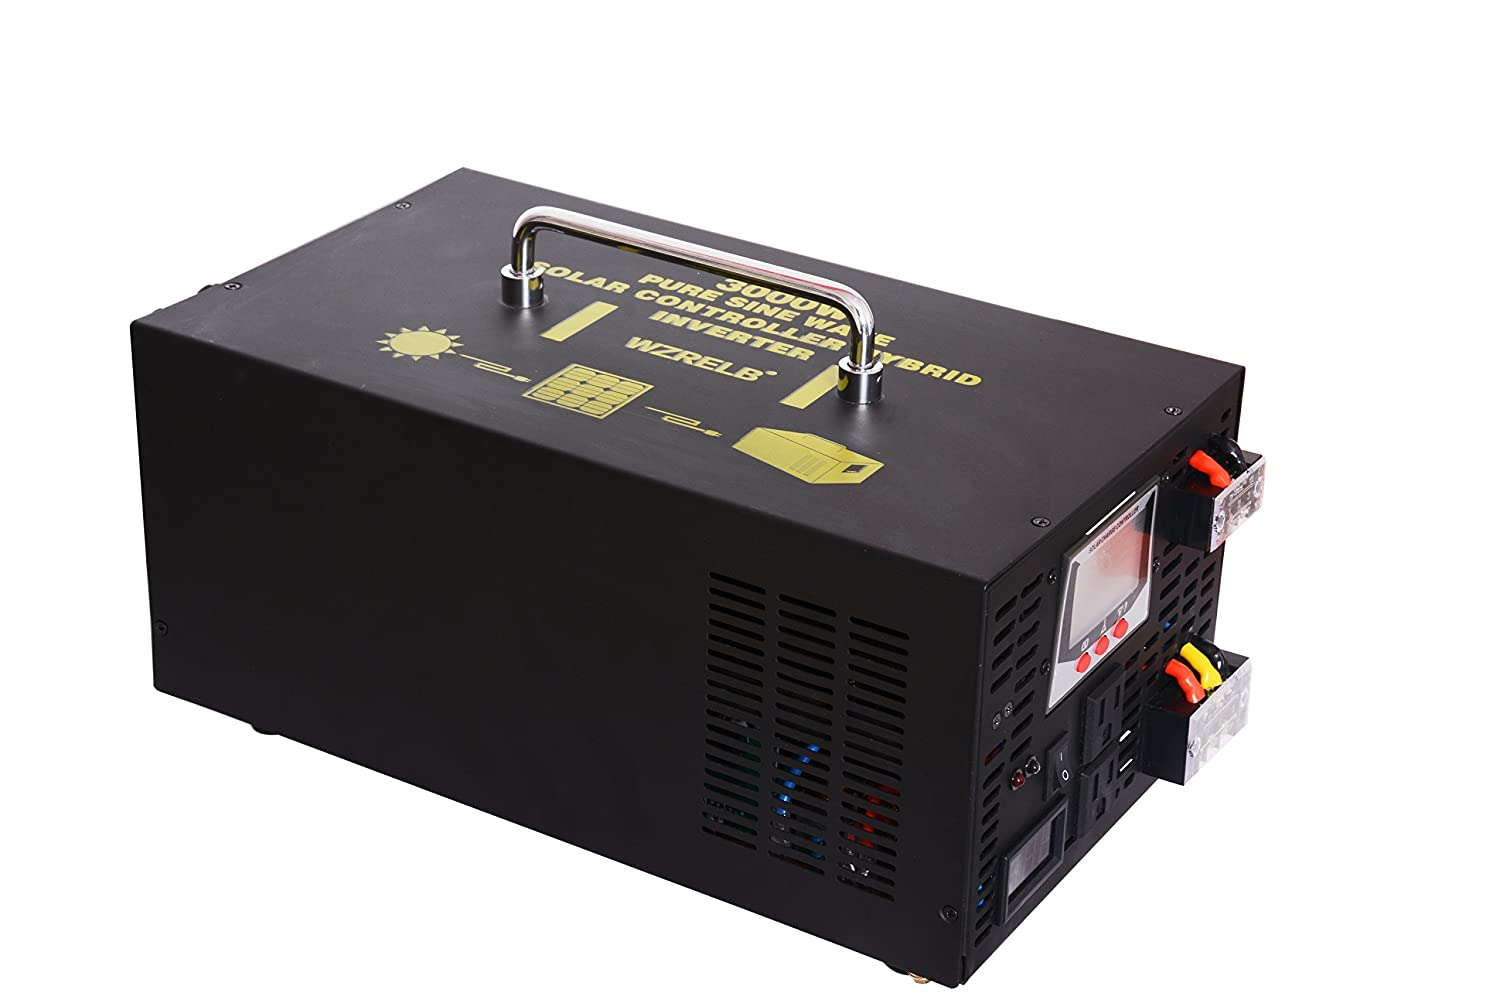 ltd 300012RBPC WZRELB 3000W 12V 120V DC to AC Off Grid All in One Pure Sine Wave Hybrid Inverter 30A Solar Charge Controller PV Photovoltaic Home Solar System Yueqing Reliable Electric co